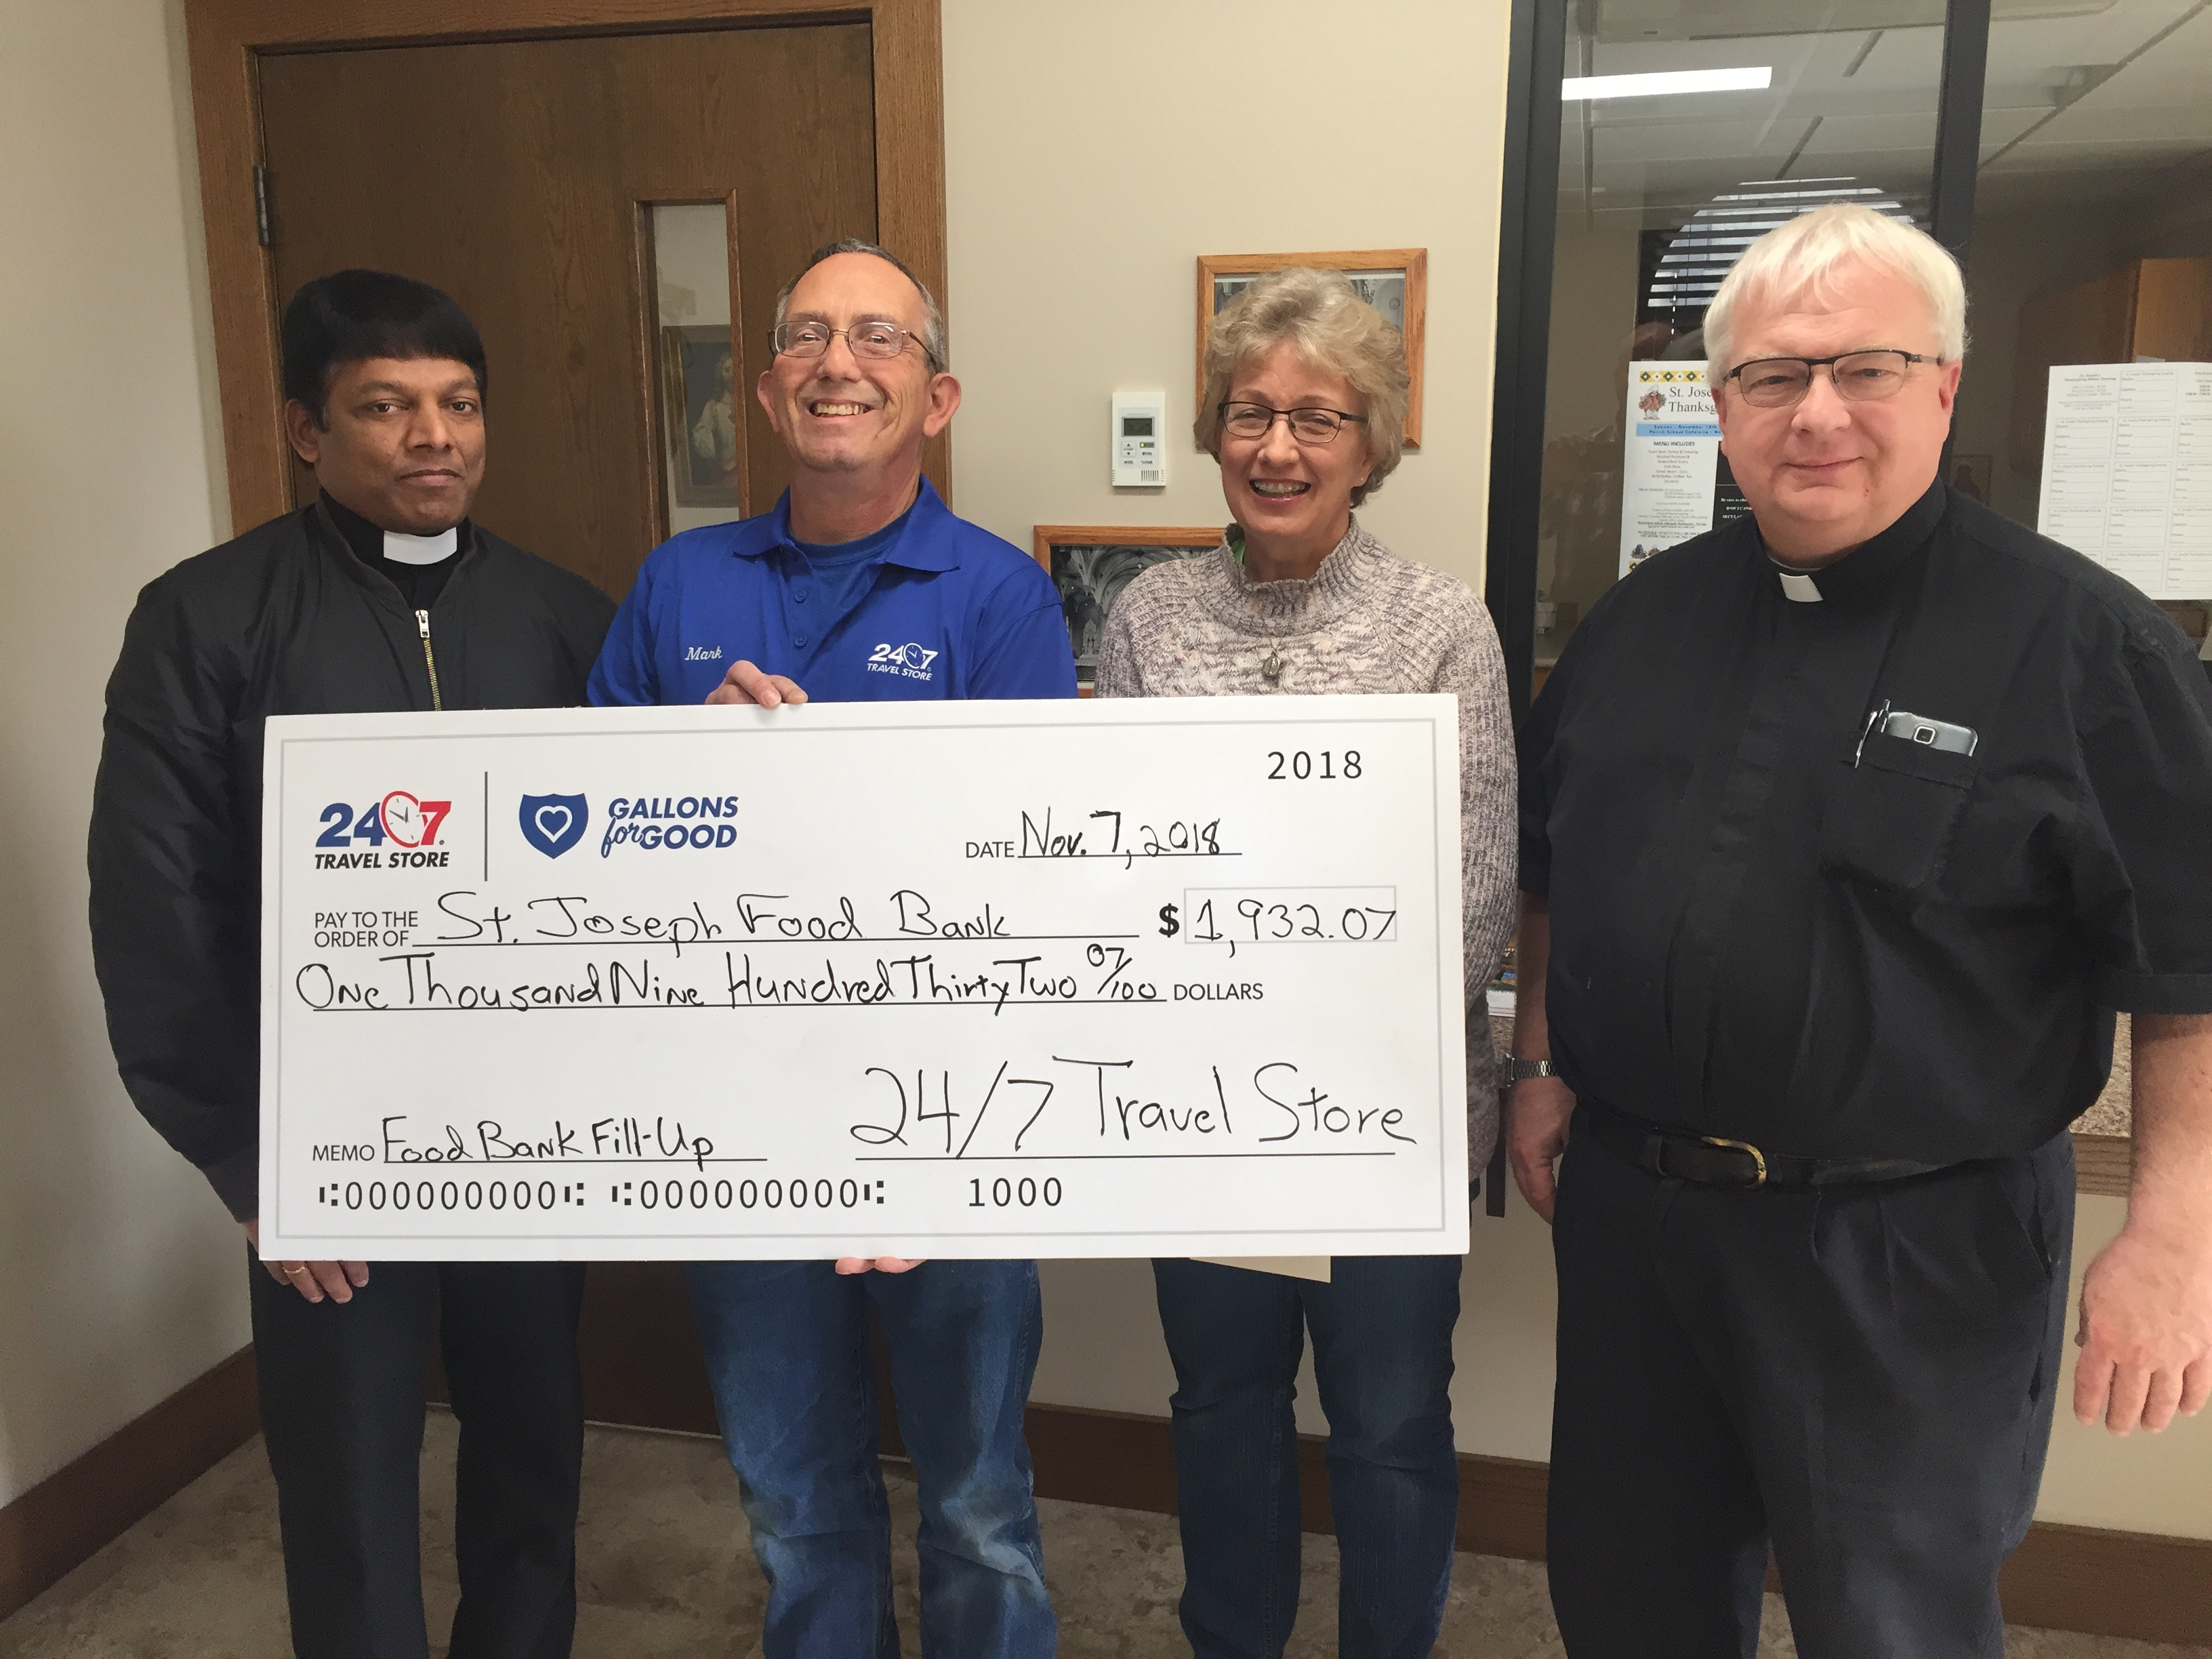 St. Joseph Food Bank receives $1,932.07 from 24/7 Travel Store's Food Bank Fill-Up fundraiser